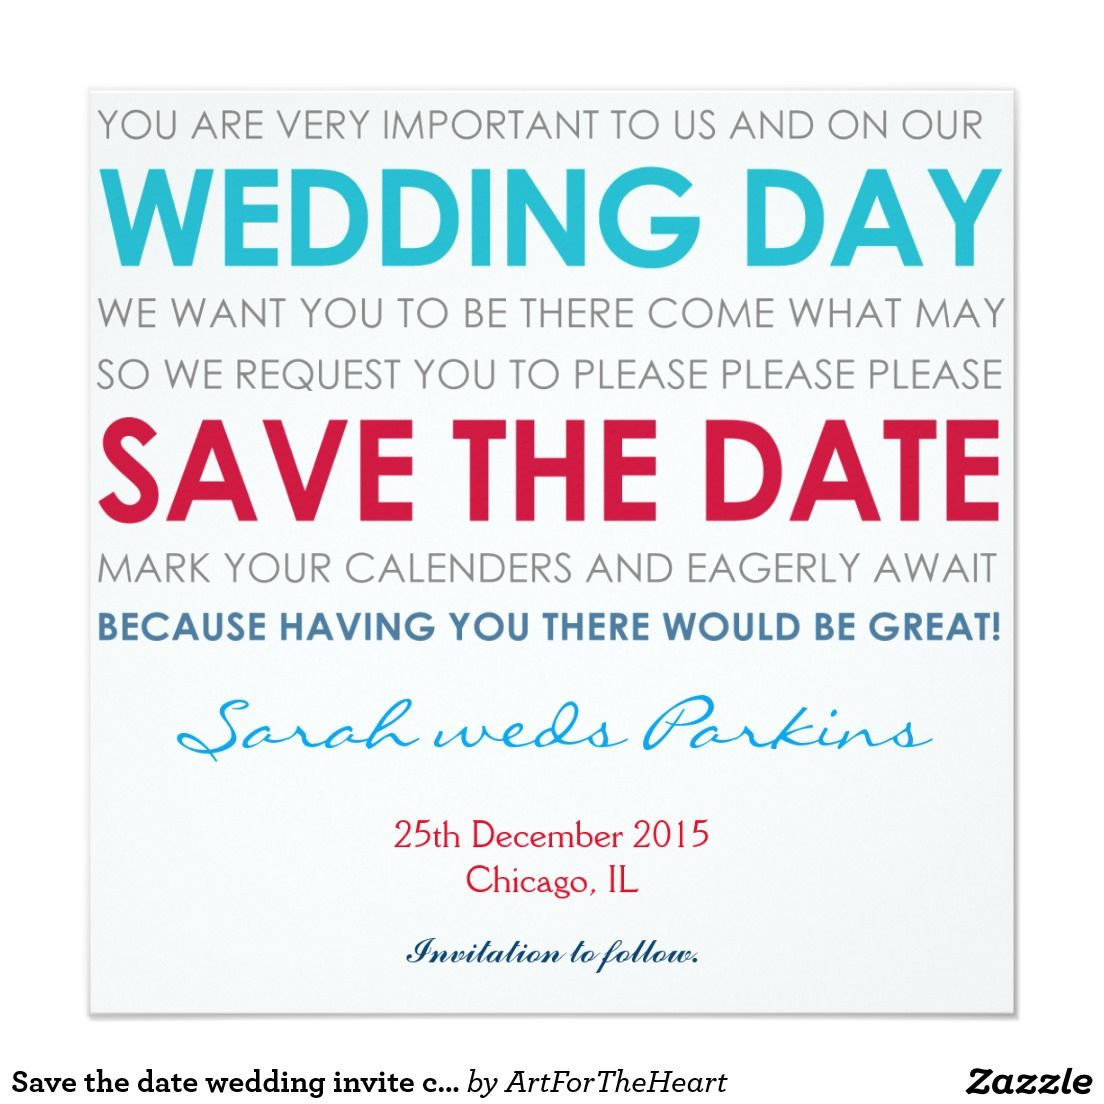 Save the date wedding invite card blue poem | Wedding and Weddings